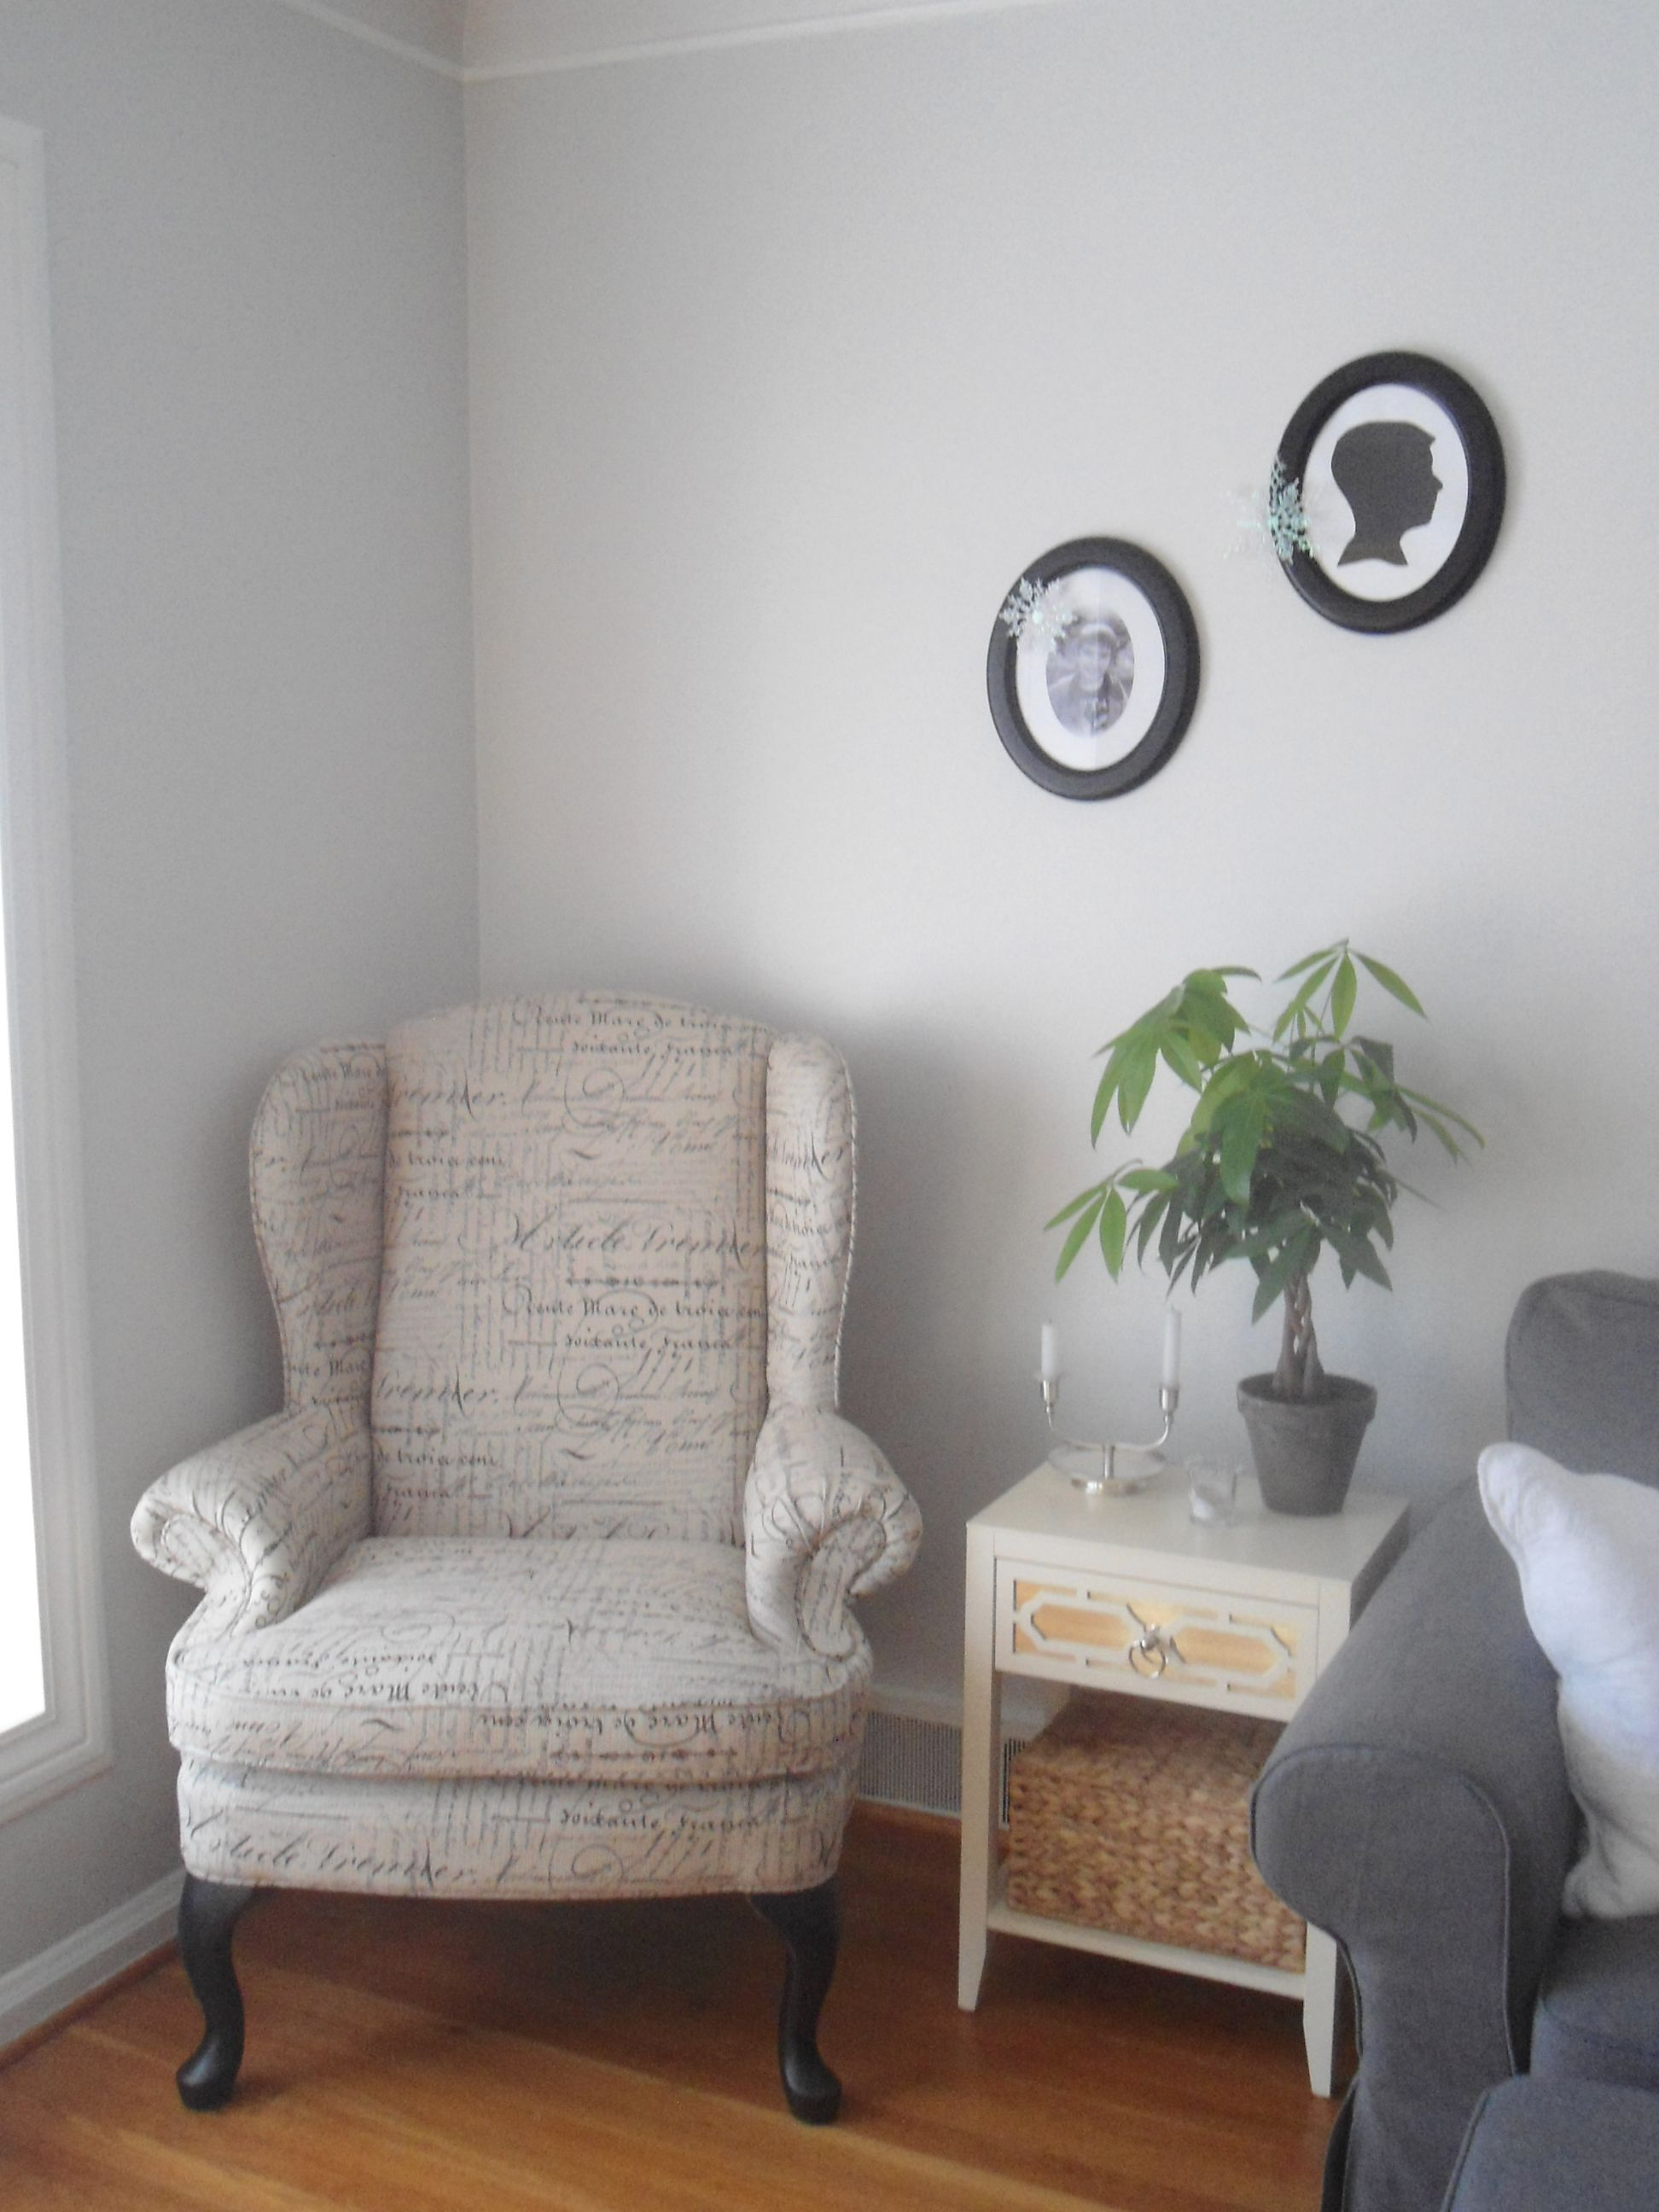 Best Living Room Paint Color Benjamin Moore Gray Owl Oc 52 At 400 x 300